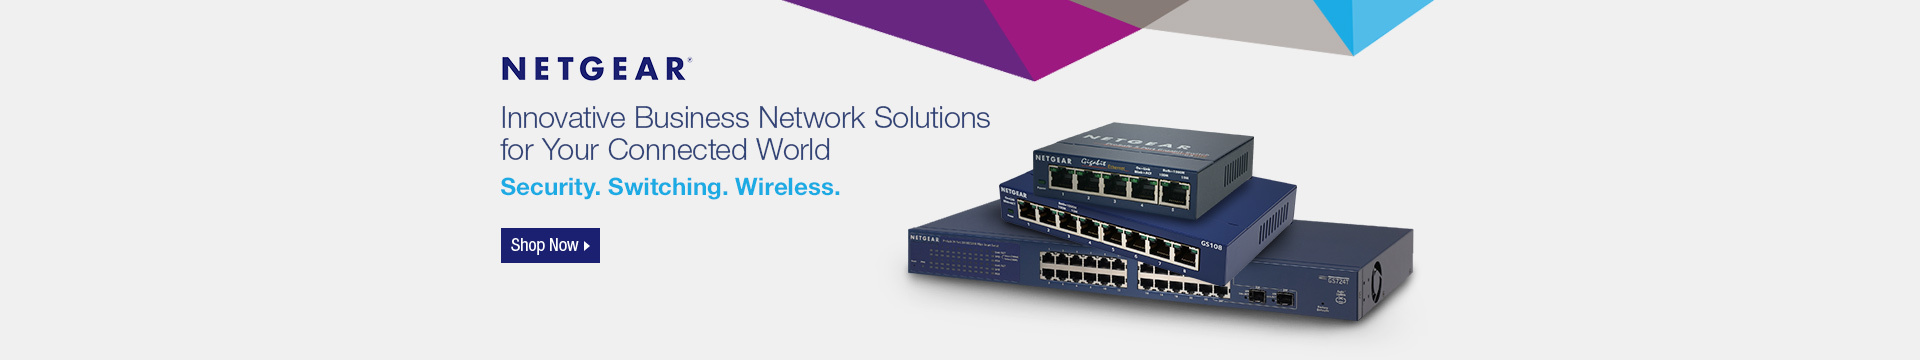 innovation business network solutions for your connected world